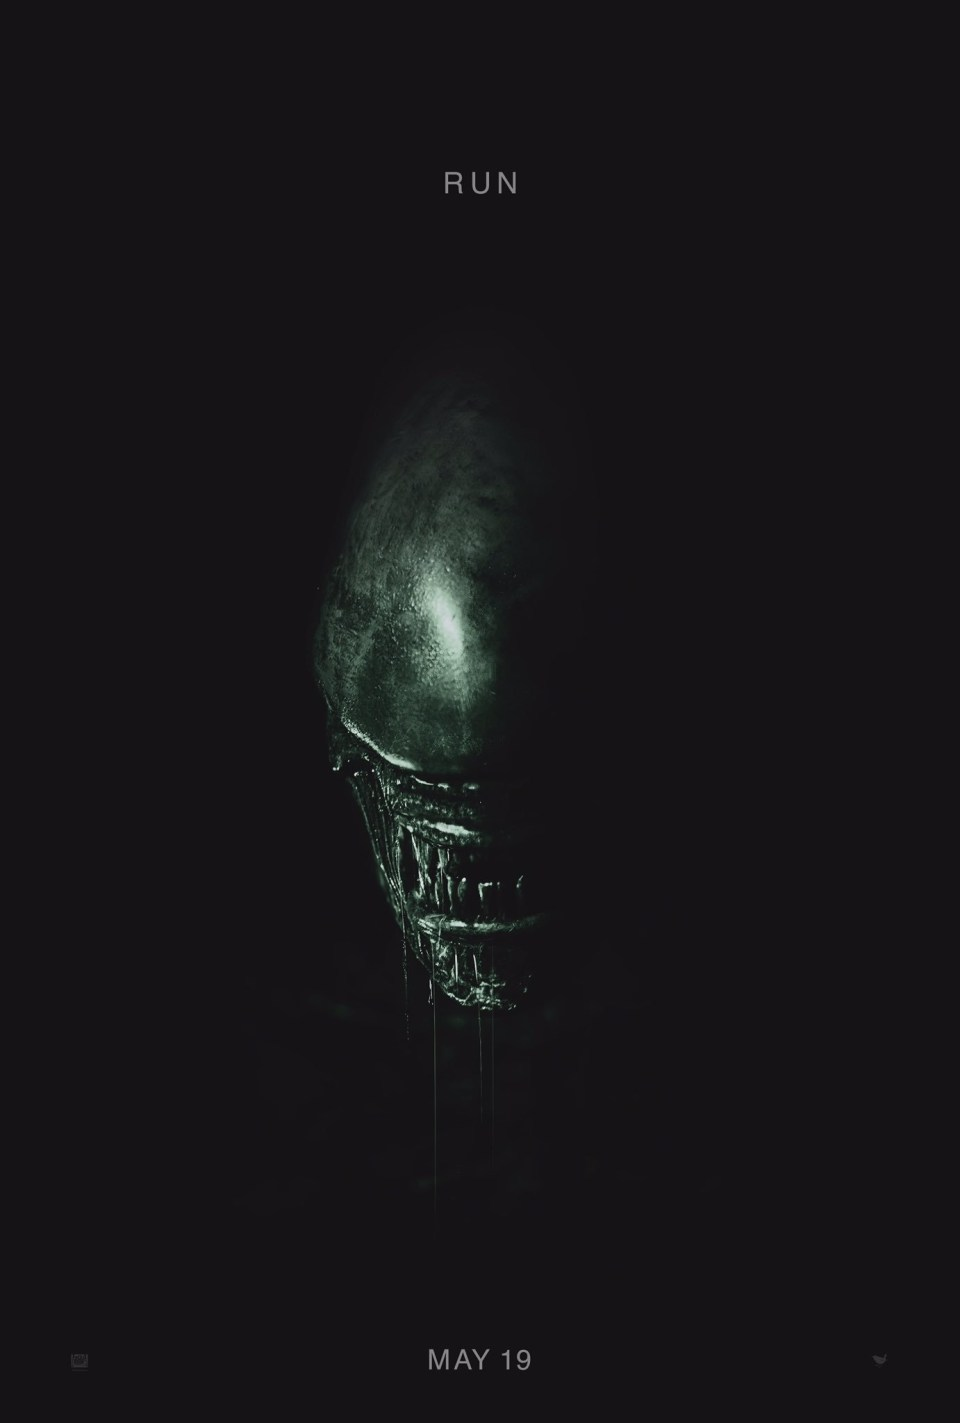 'Alien: Covenant' Gets a New Date and Official Teaser ...